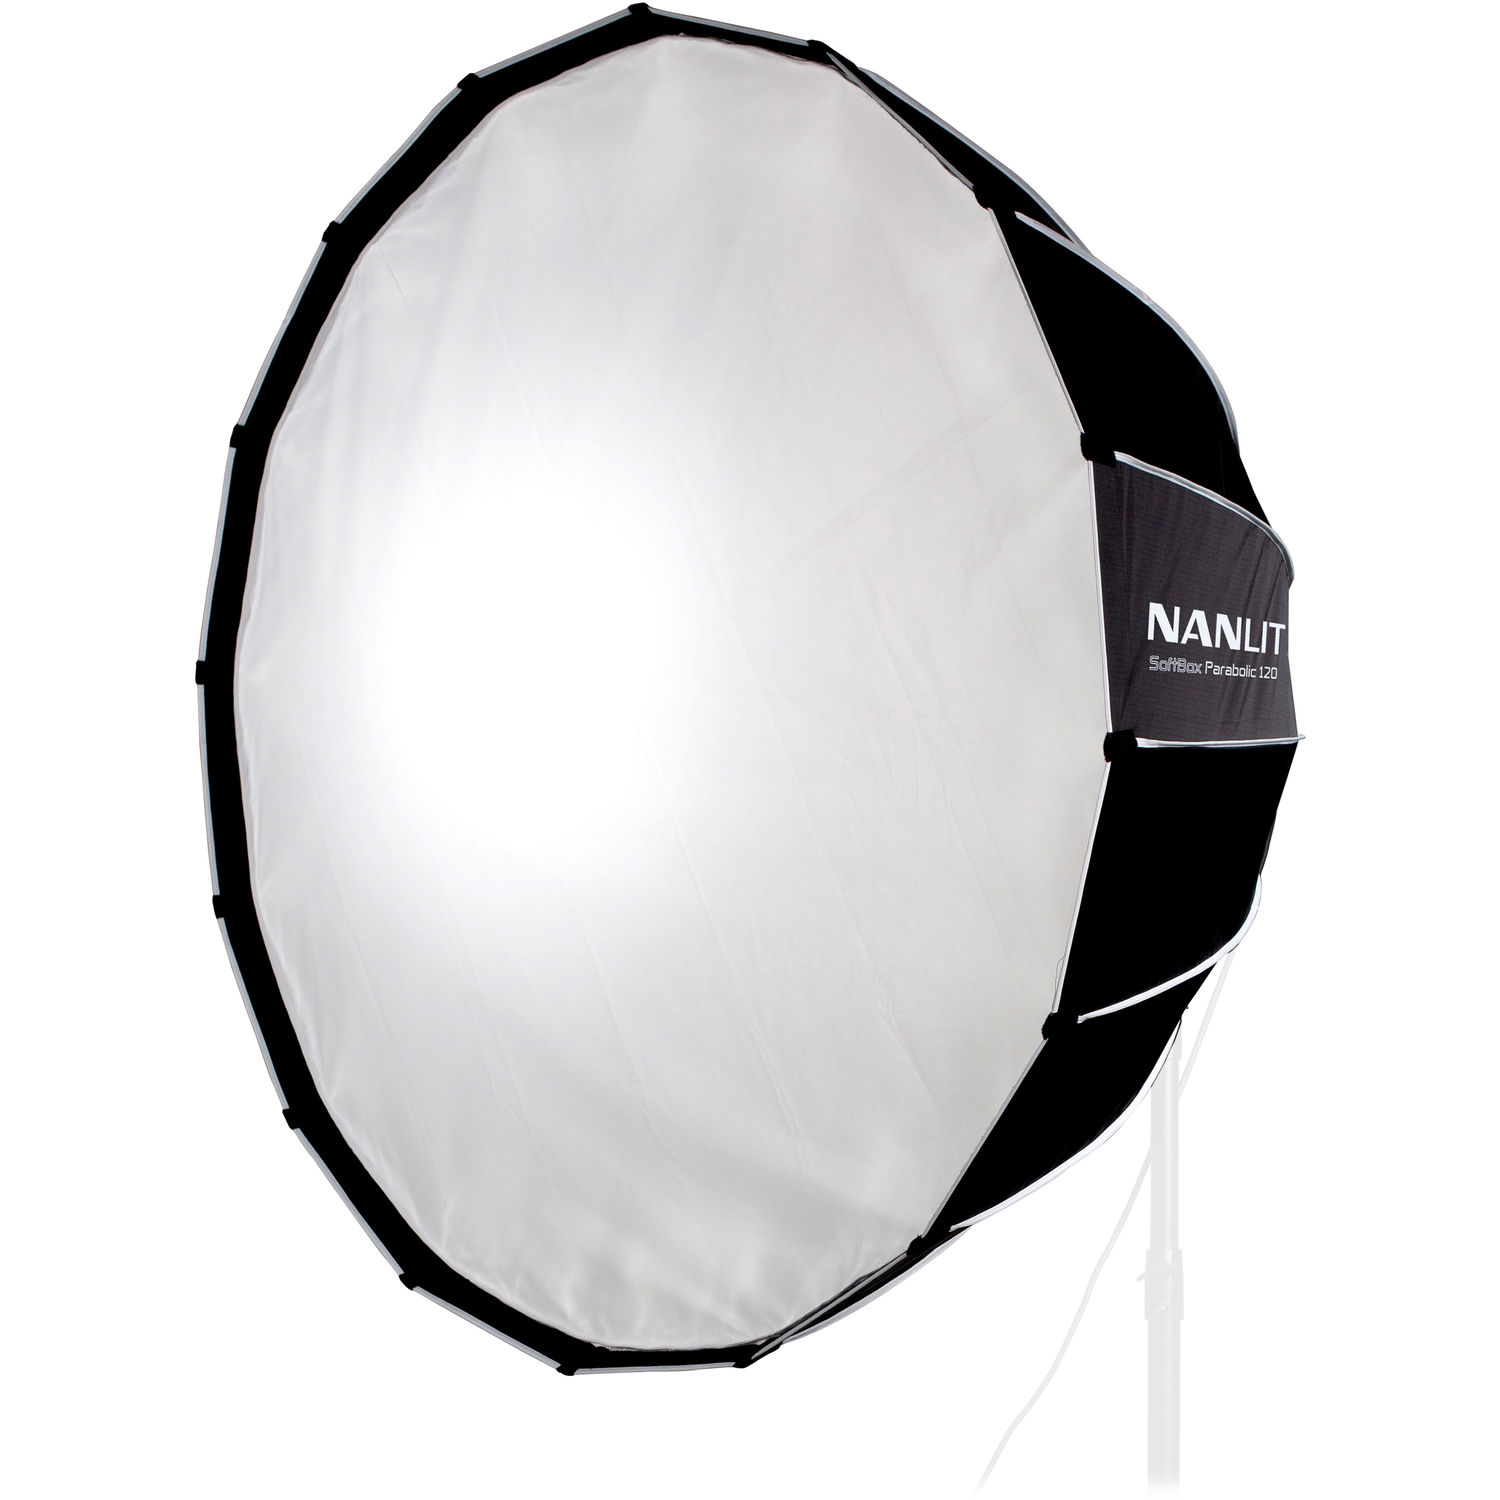 NanLite SB-PR-120-Q 120cm Easy Up Quick-fold Parabolic softbox